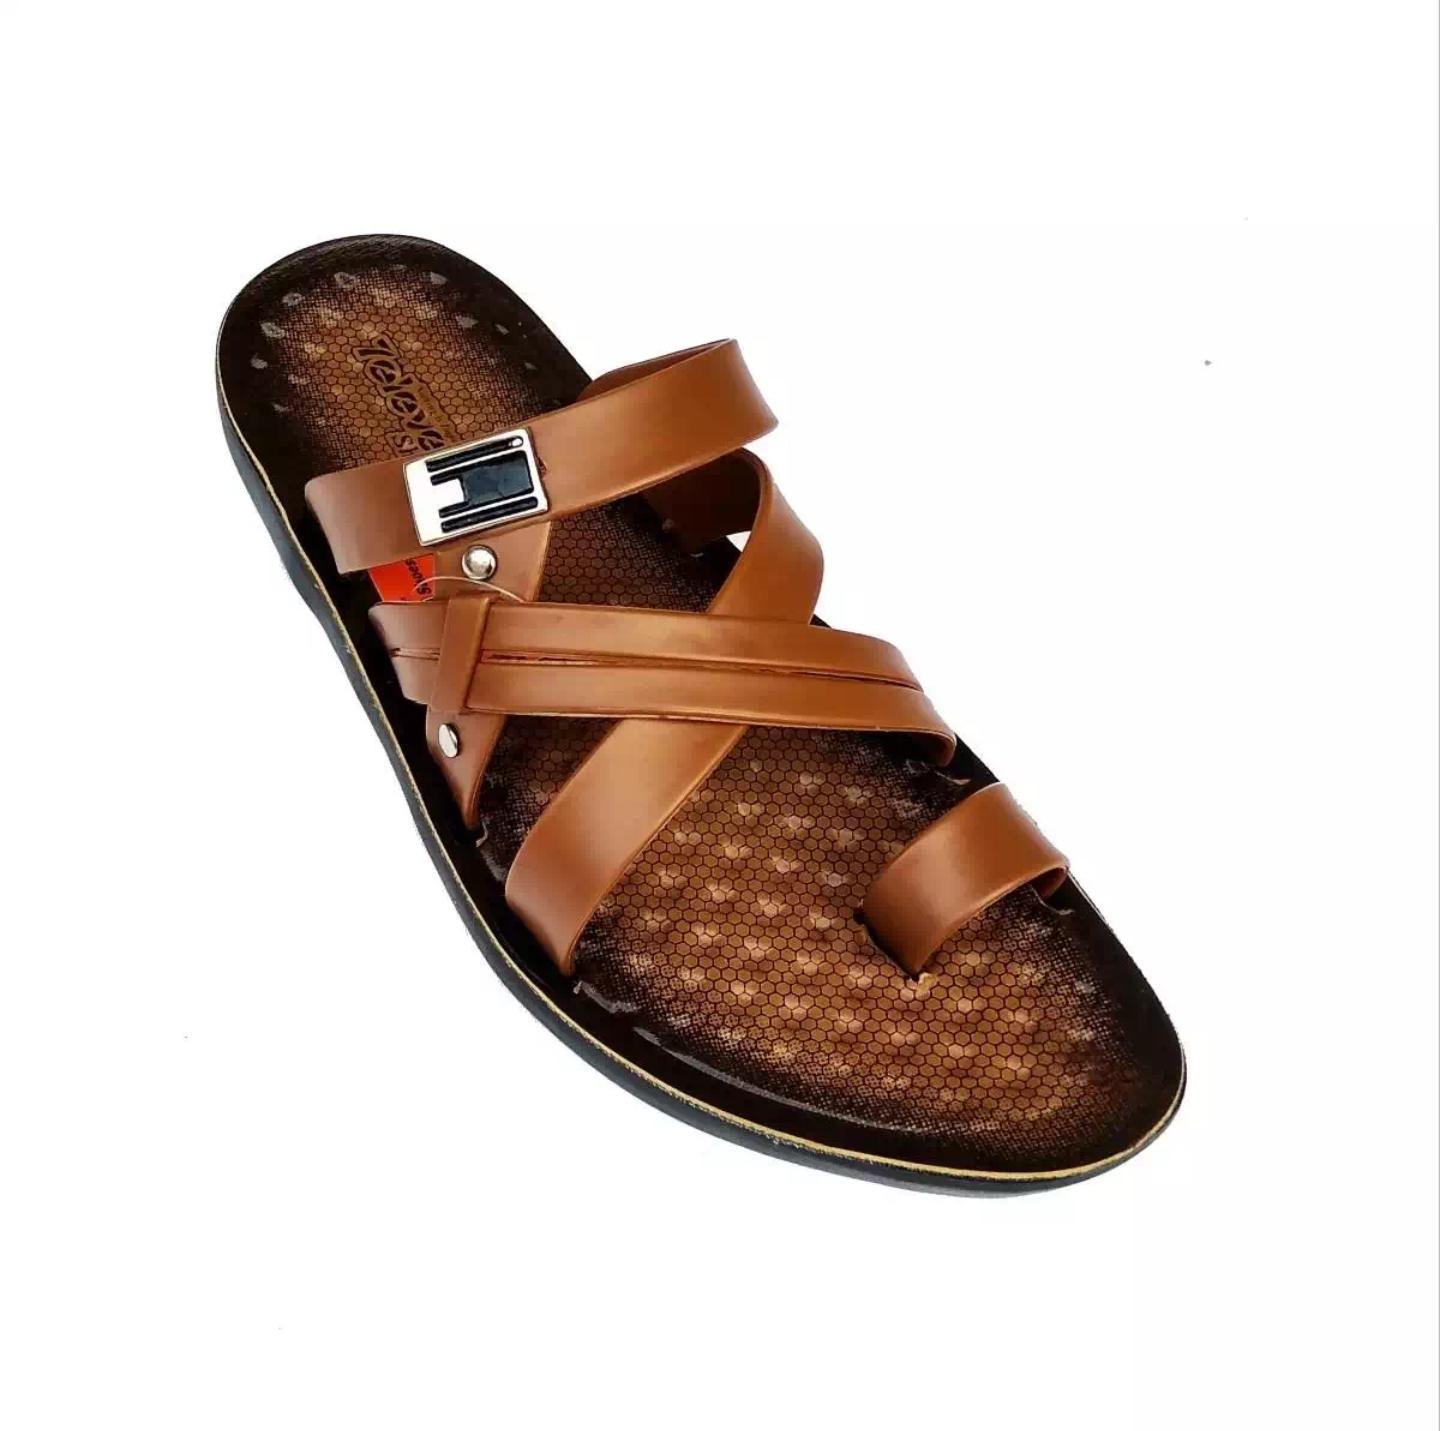 72f1e25afd67 Men's Sandals & Slippers Online - Daraz Pakistan